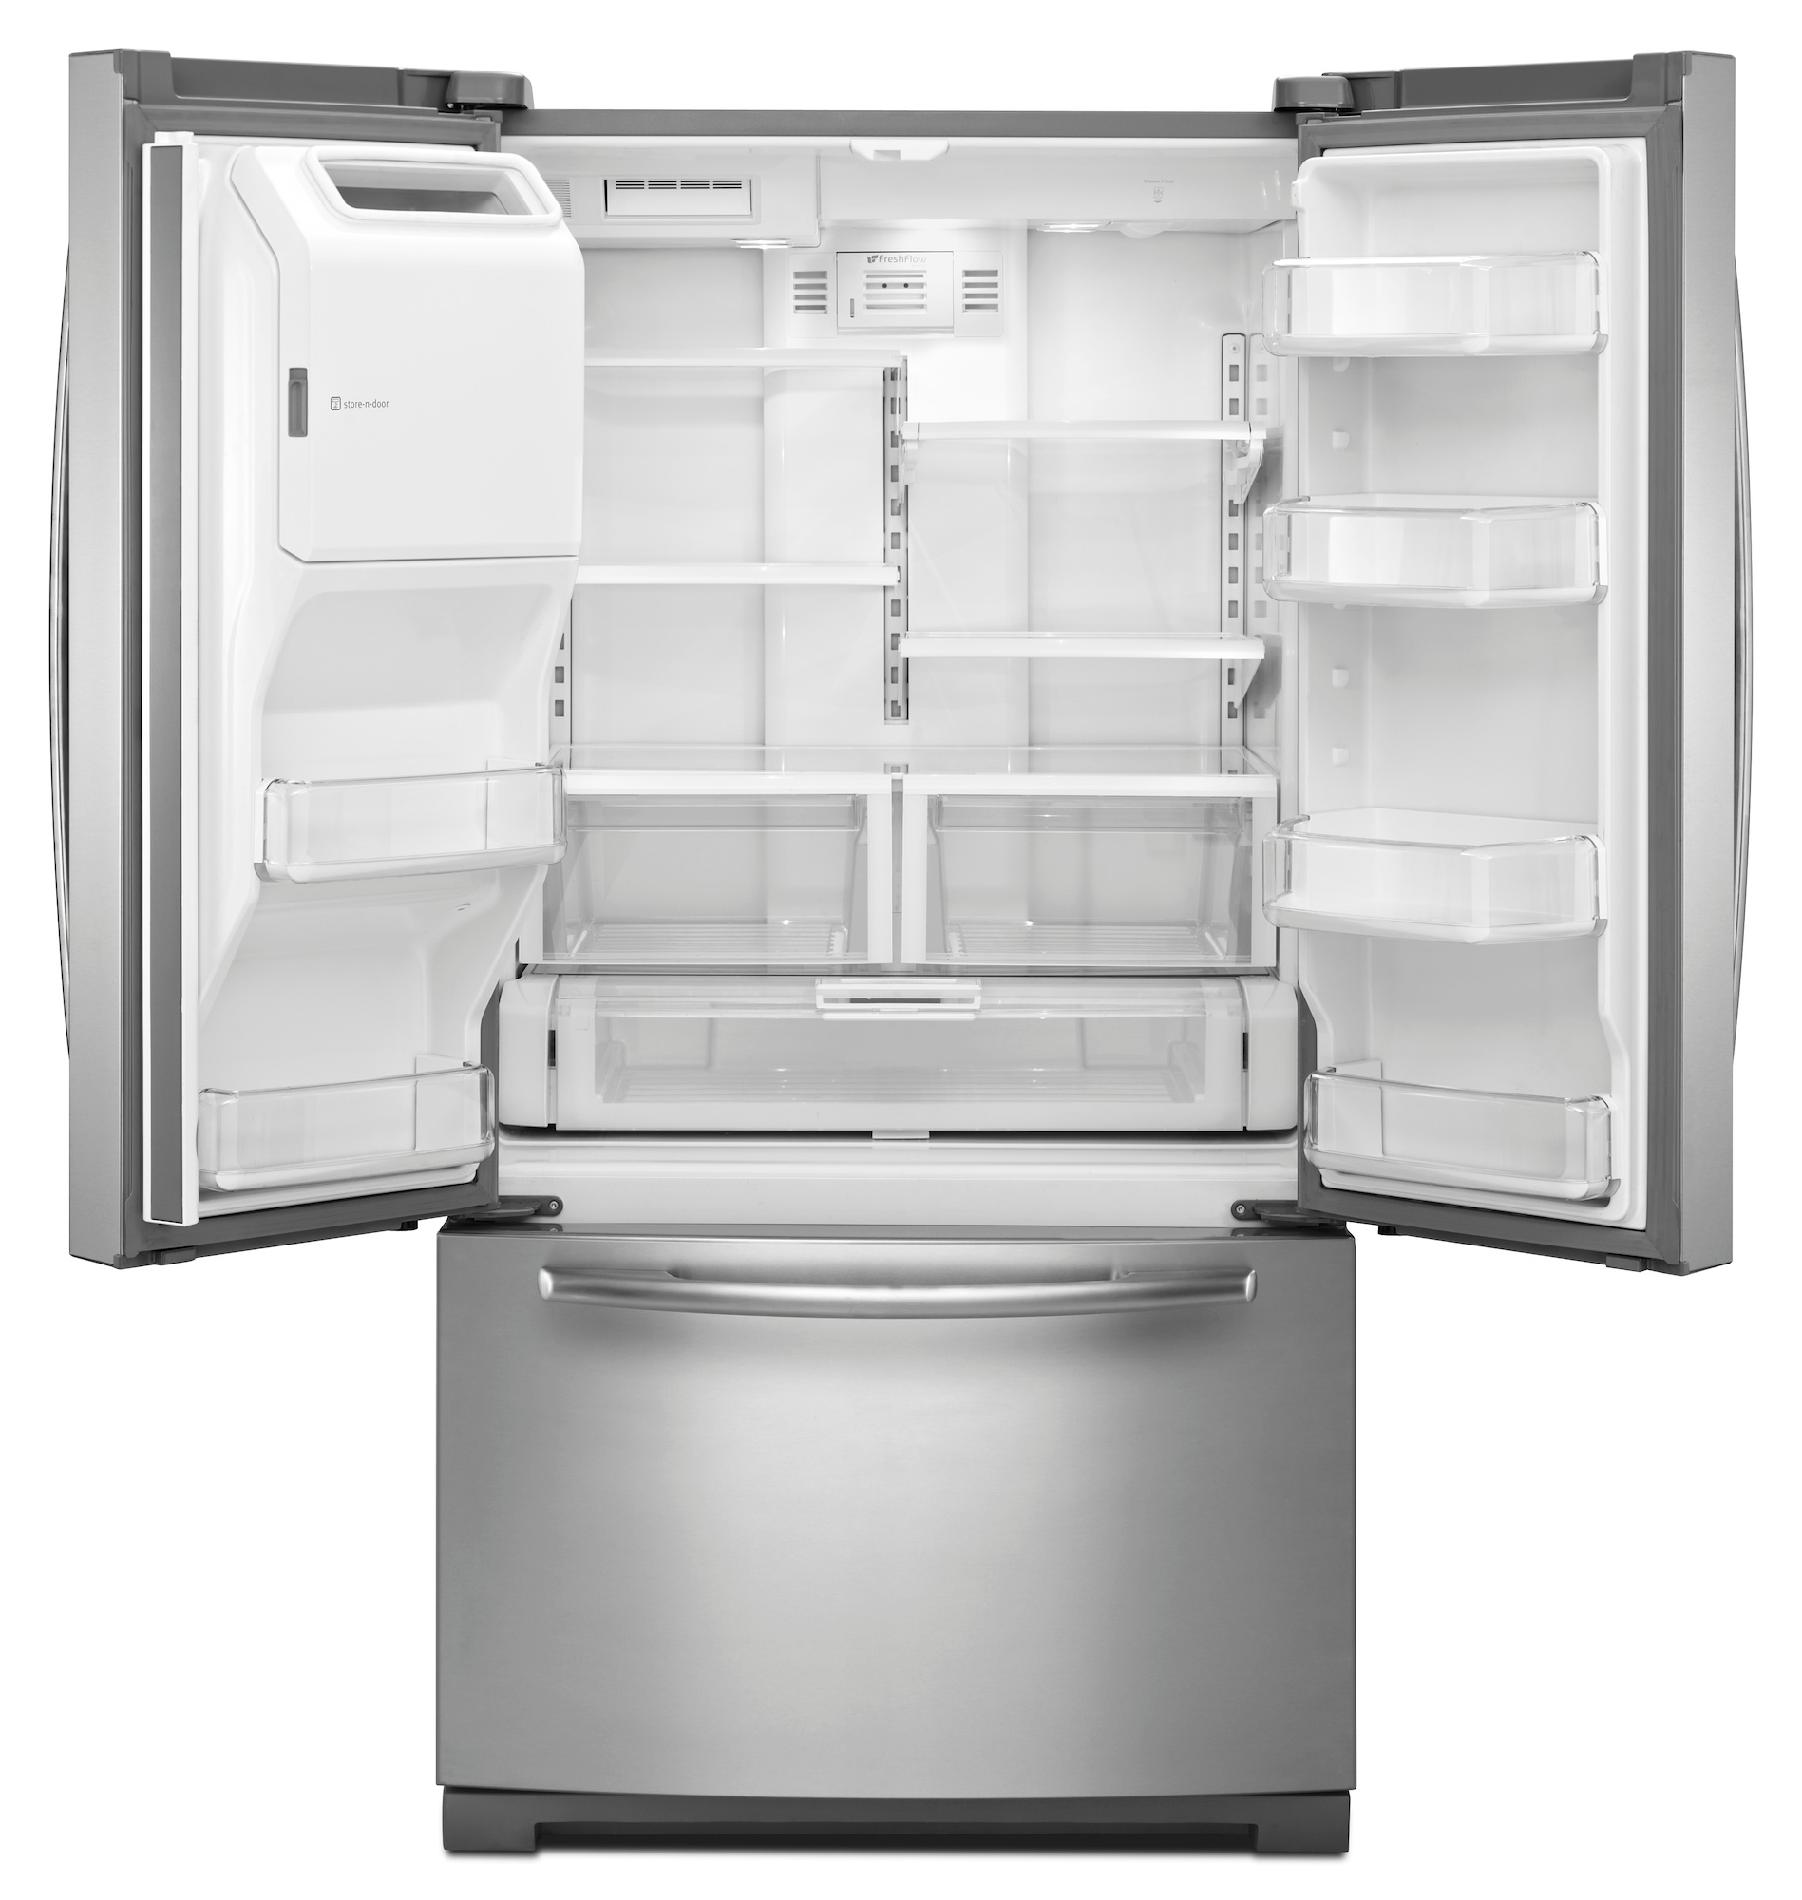 Maytag 26.1 cu. ft. French-Door Refrigerator w/ 2X Life Compressor - Stainless Steel